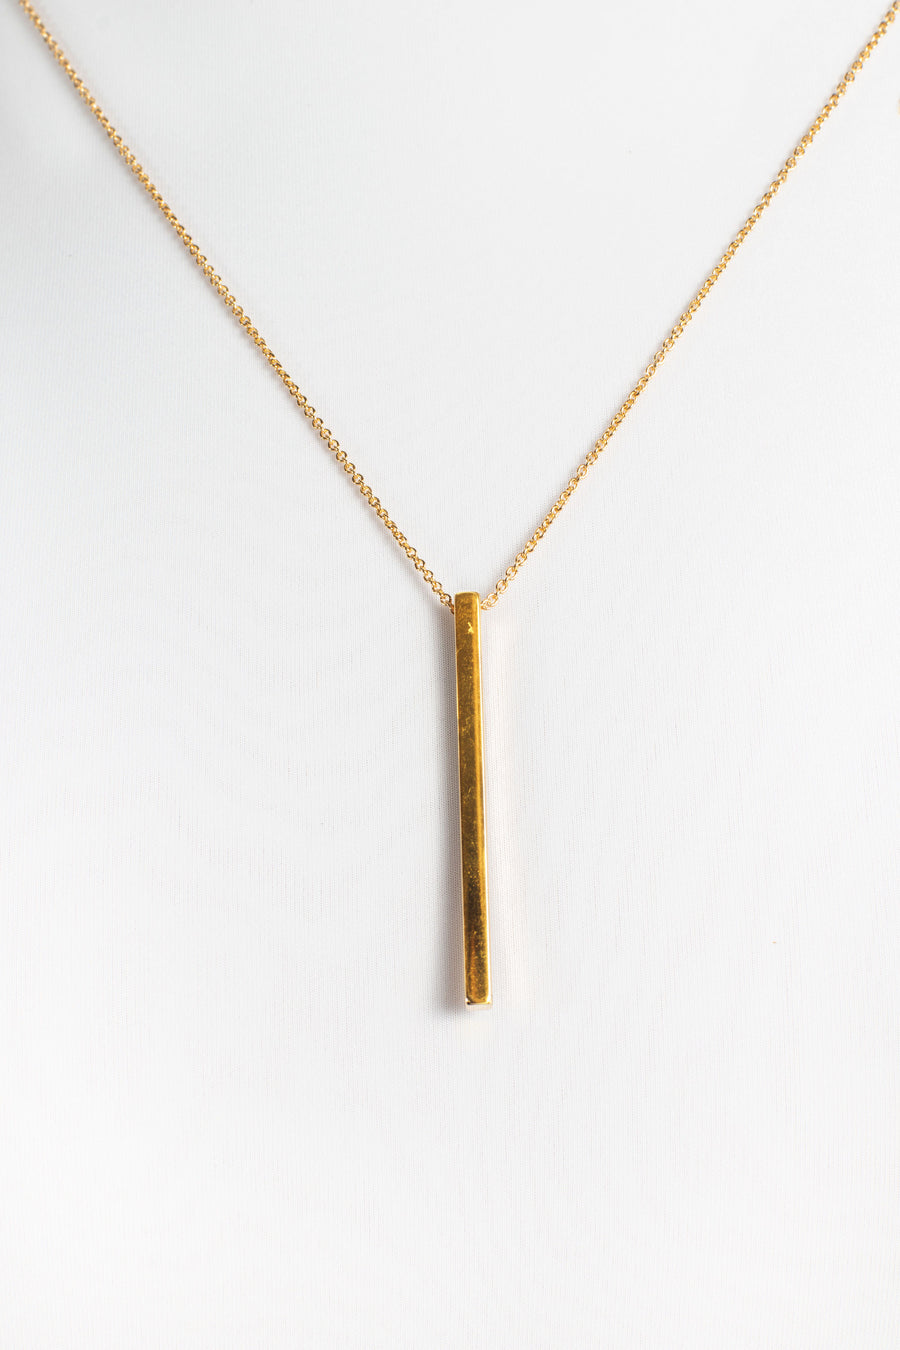 Amano Studio Golden Rod Necklace